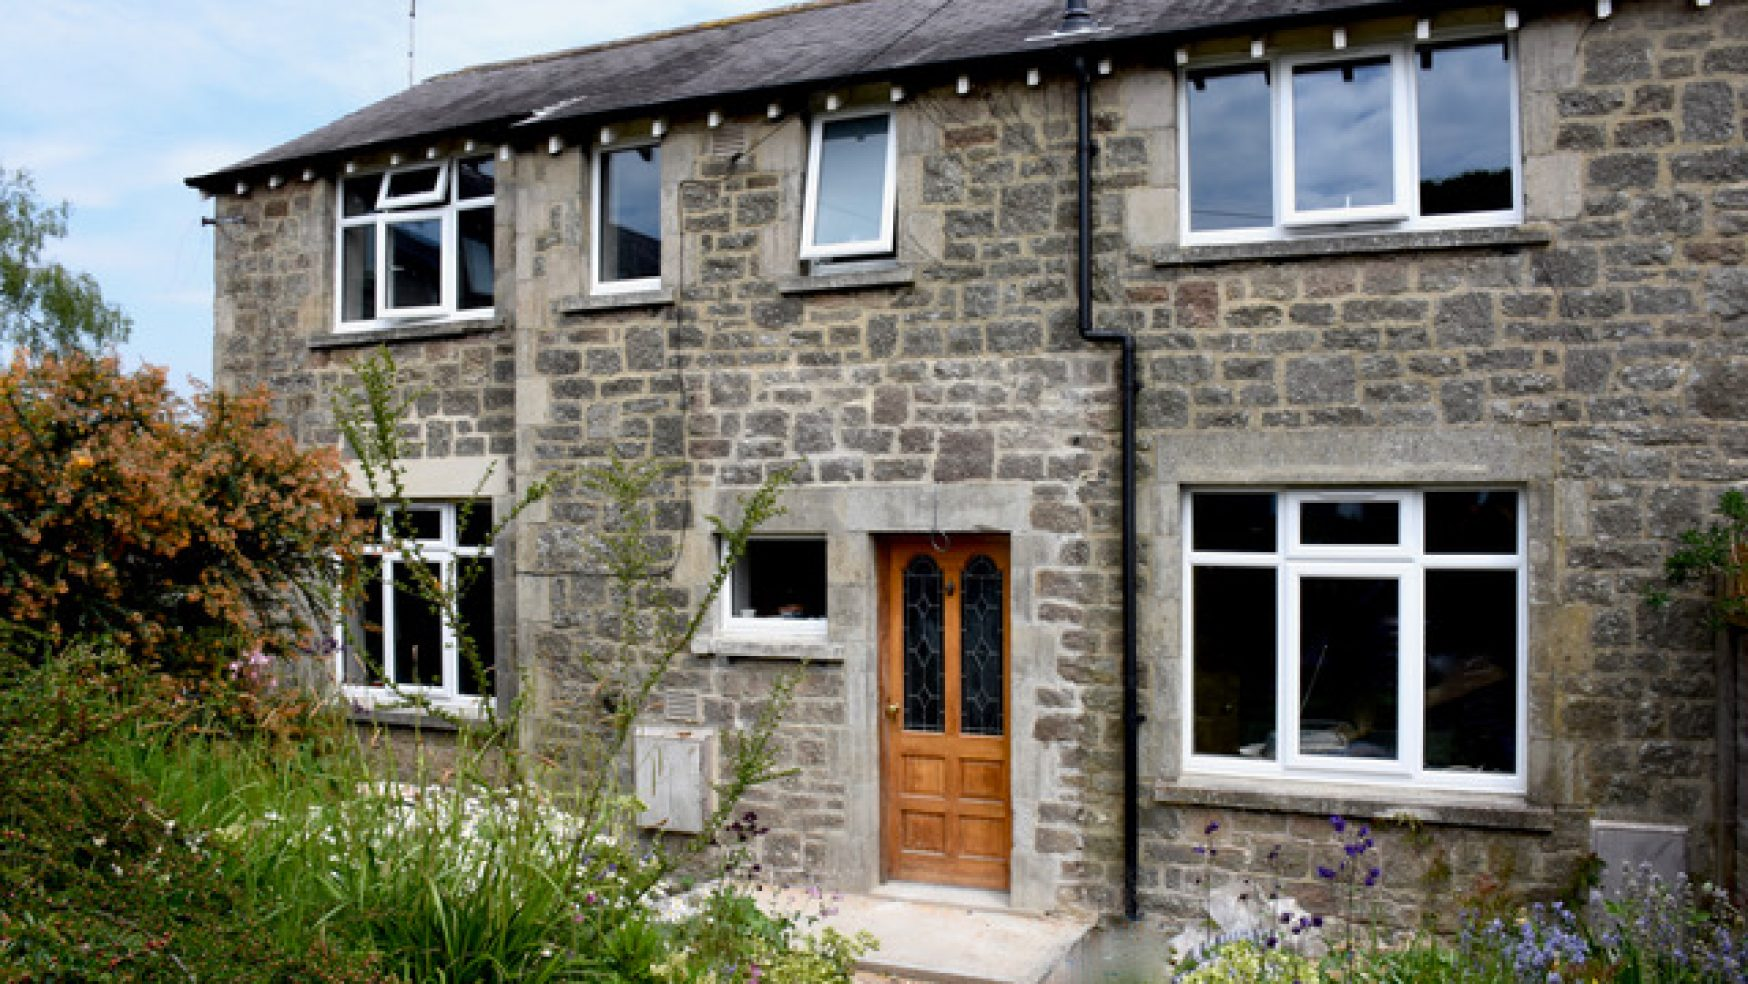 5 West End, Baslow: SOLD SUBJECT TO CONTRACT